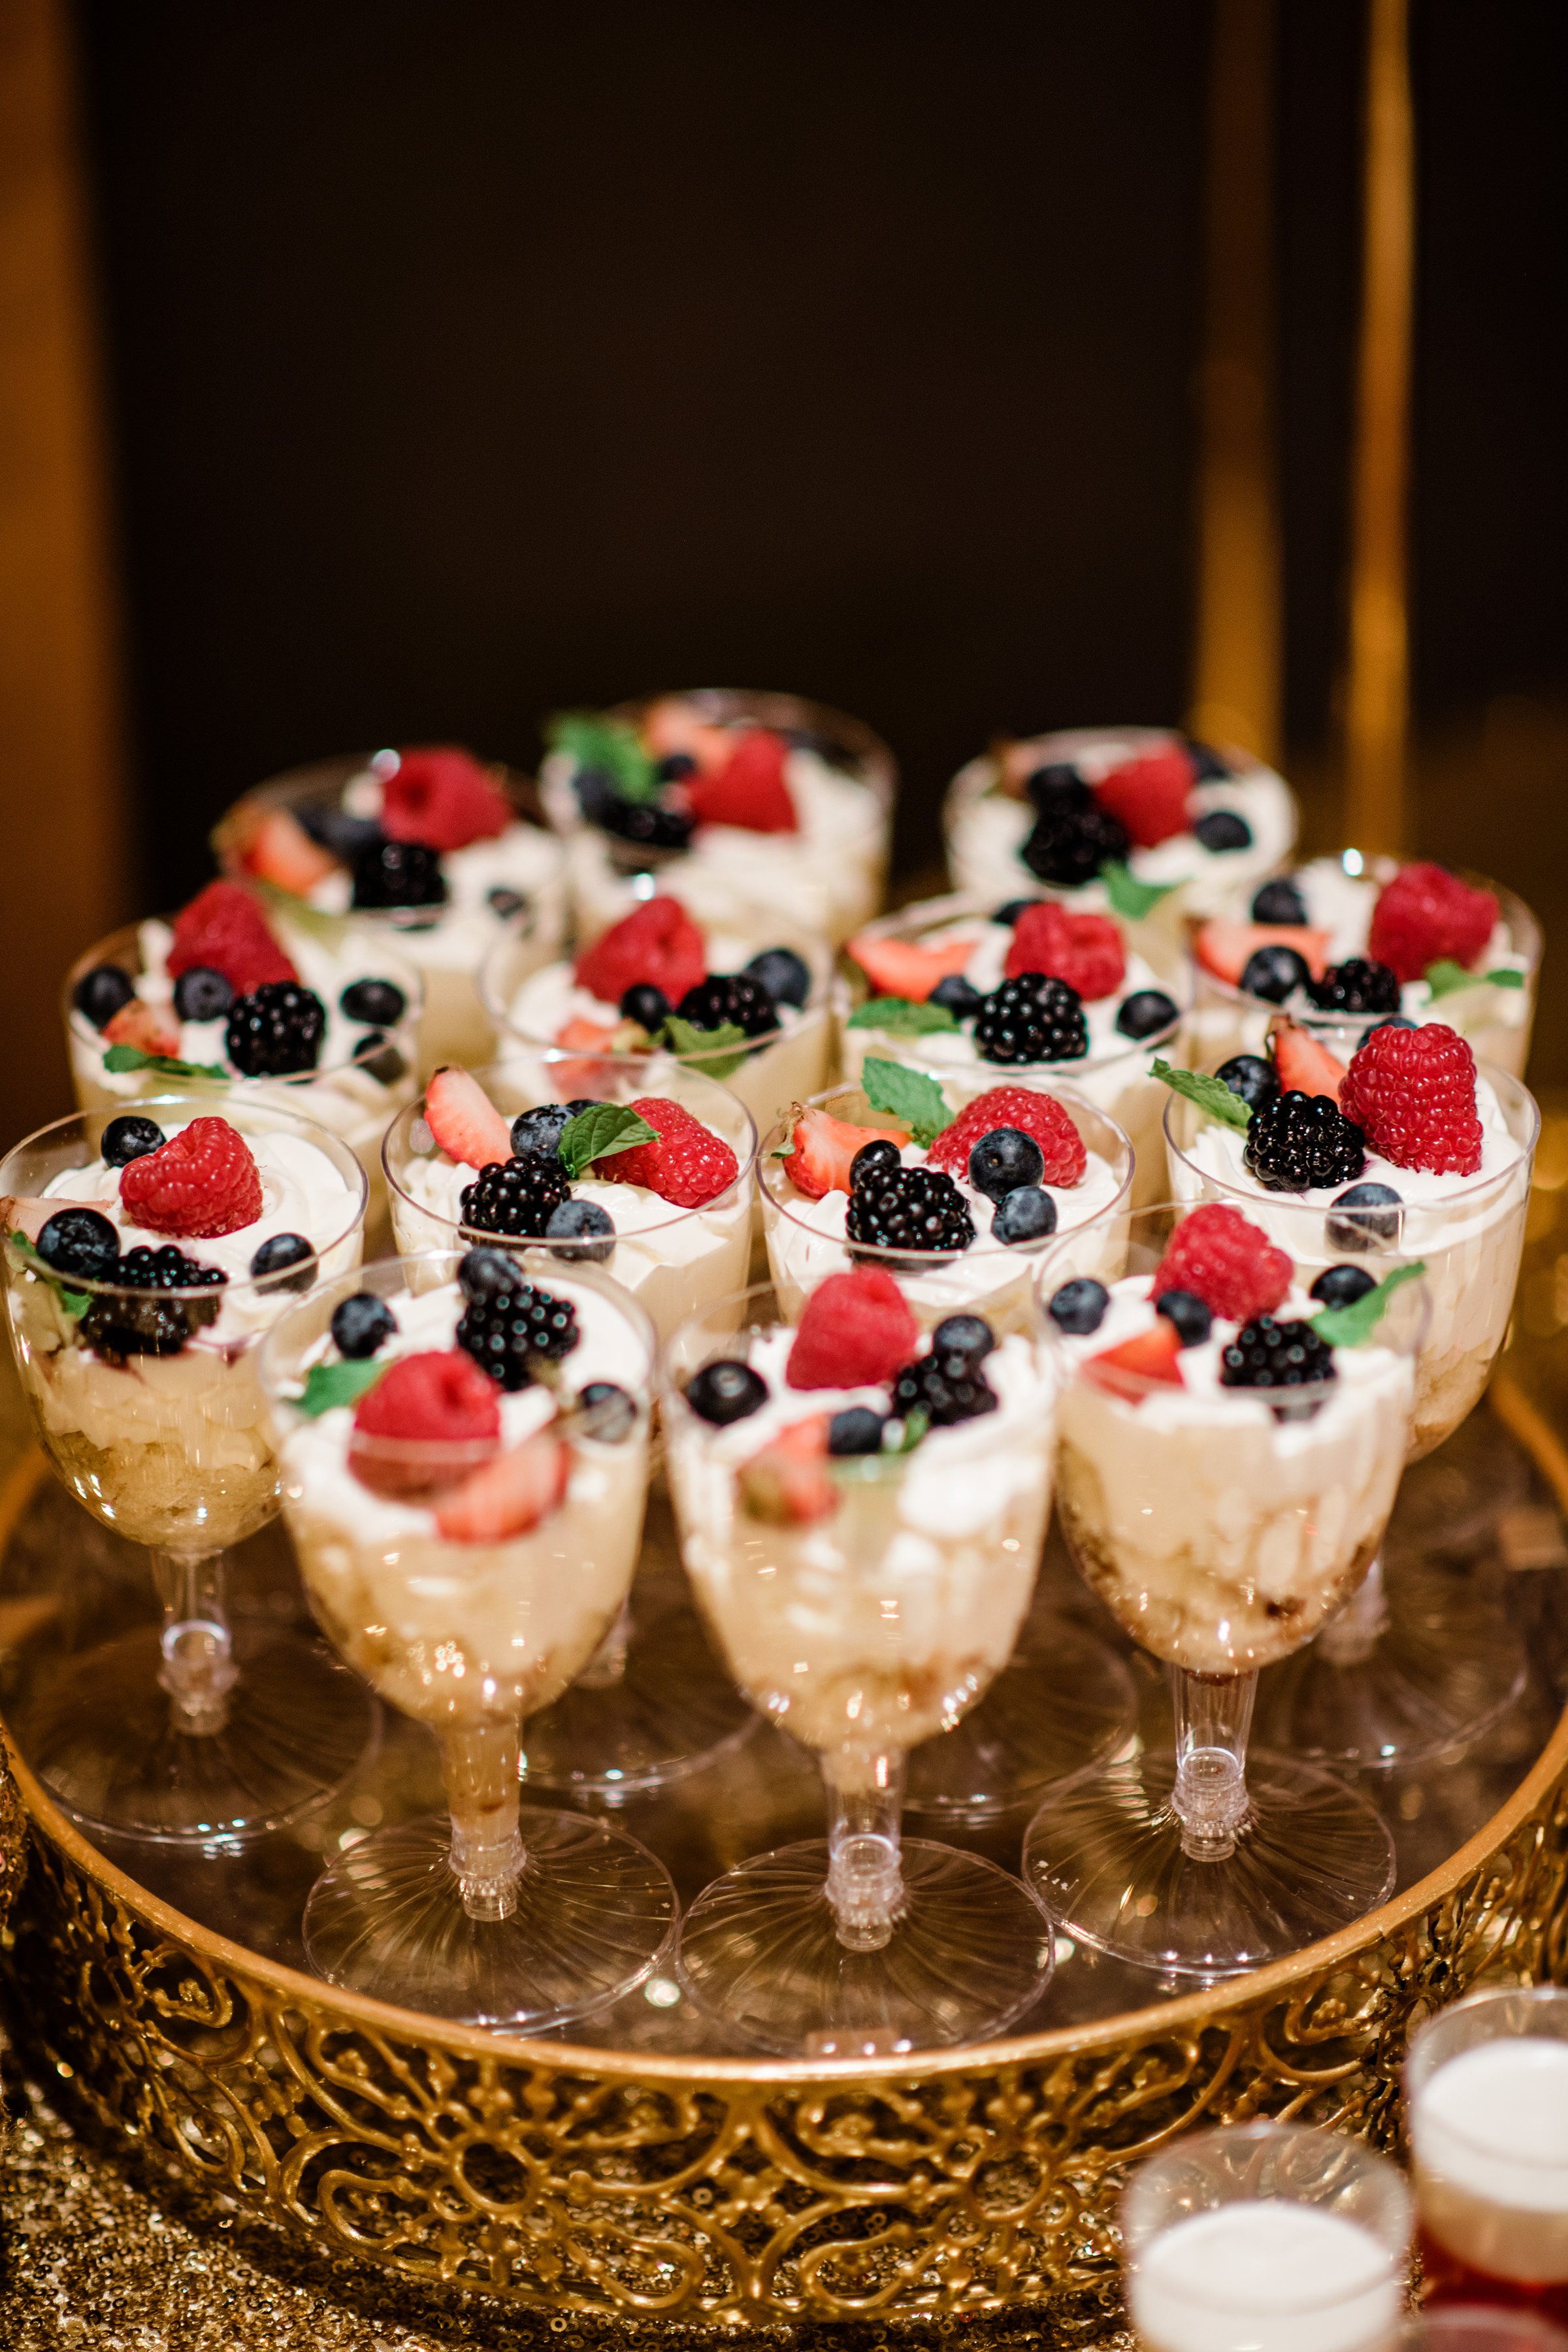 Parfaits on a tray - photo by Alante Photography